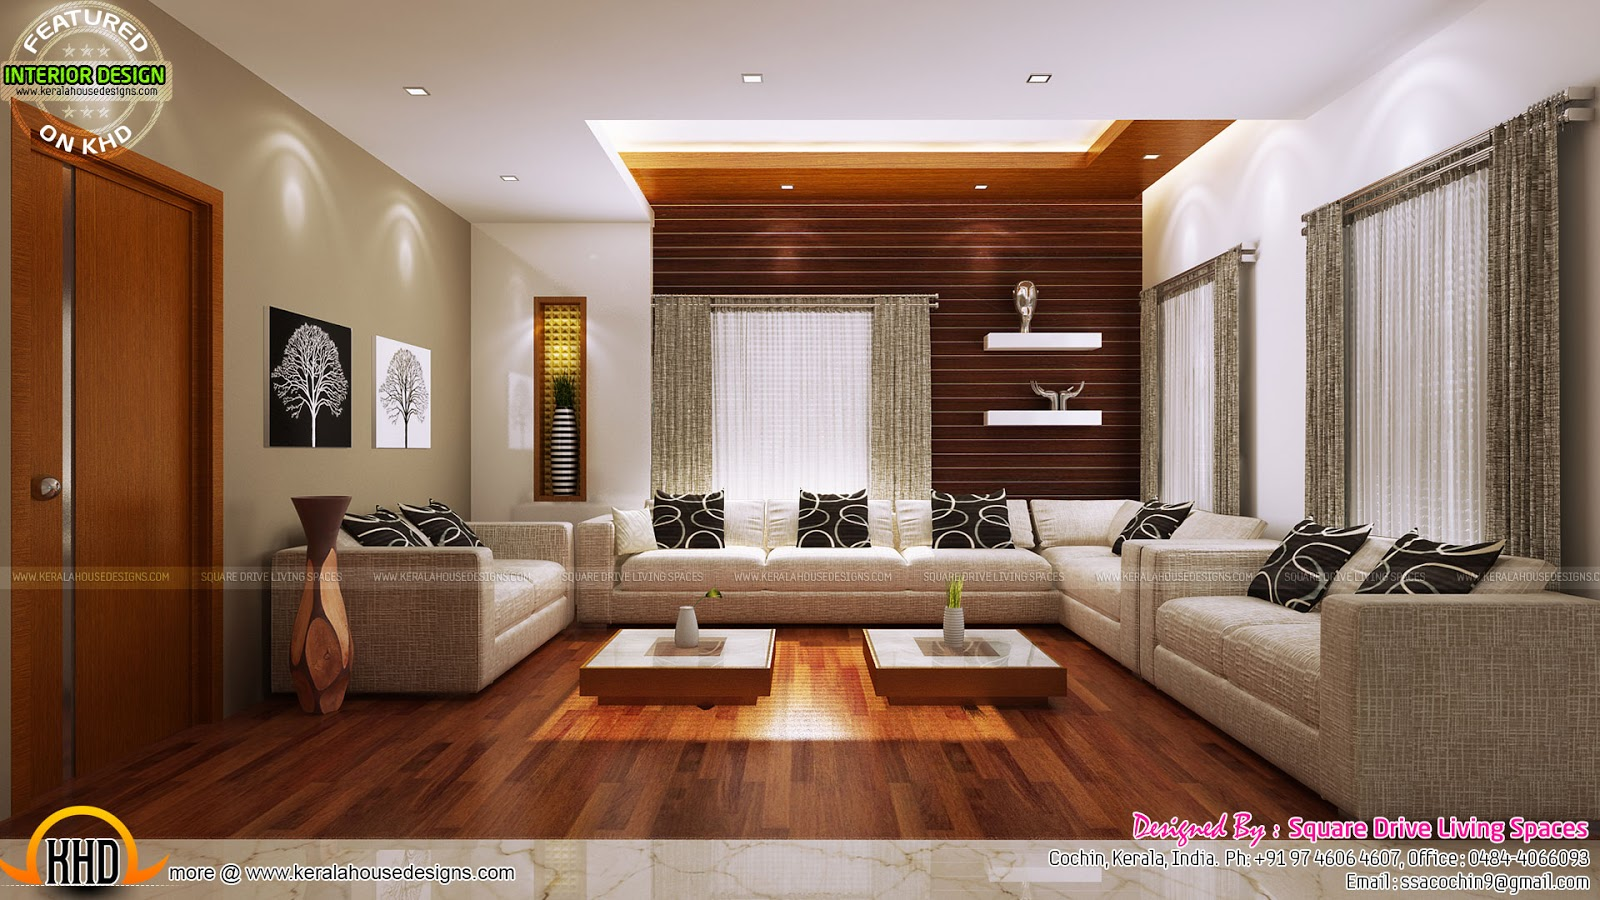 Excellent kerala interior design kerala home design and House model interior design